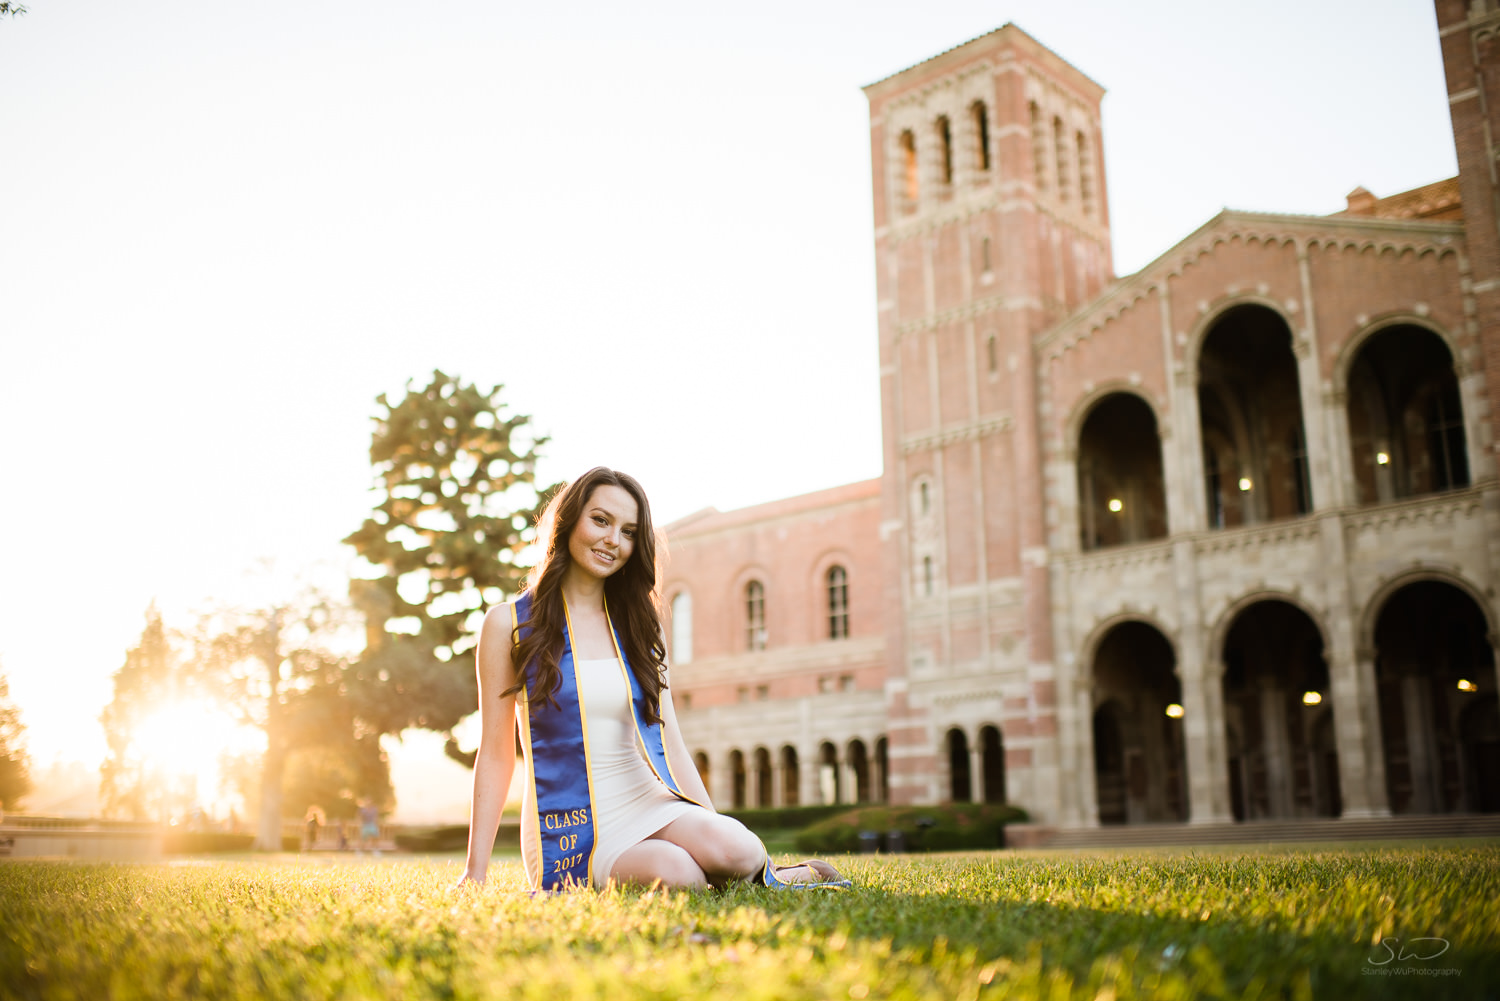 Epic UCLA landscape. Best graduation portrait photography, Los Angeles.